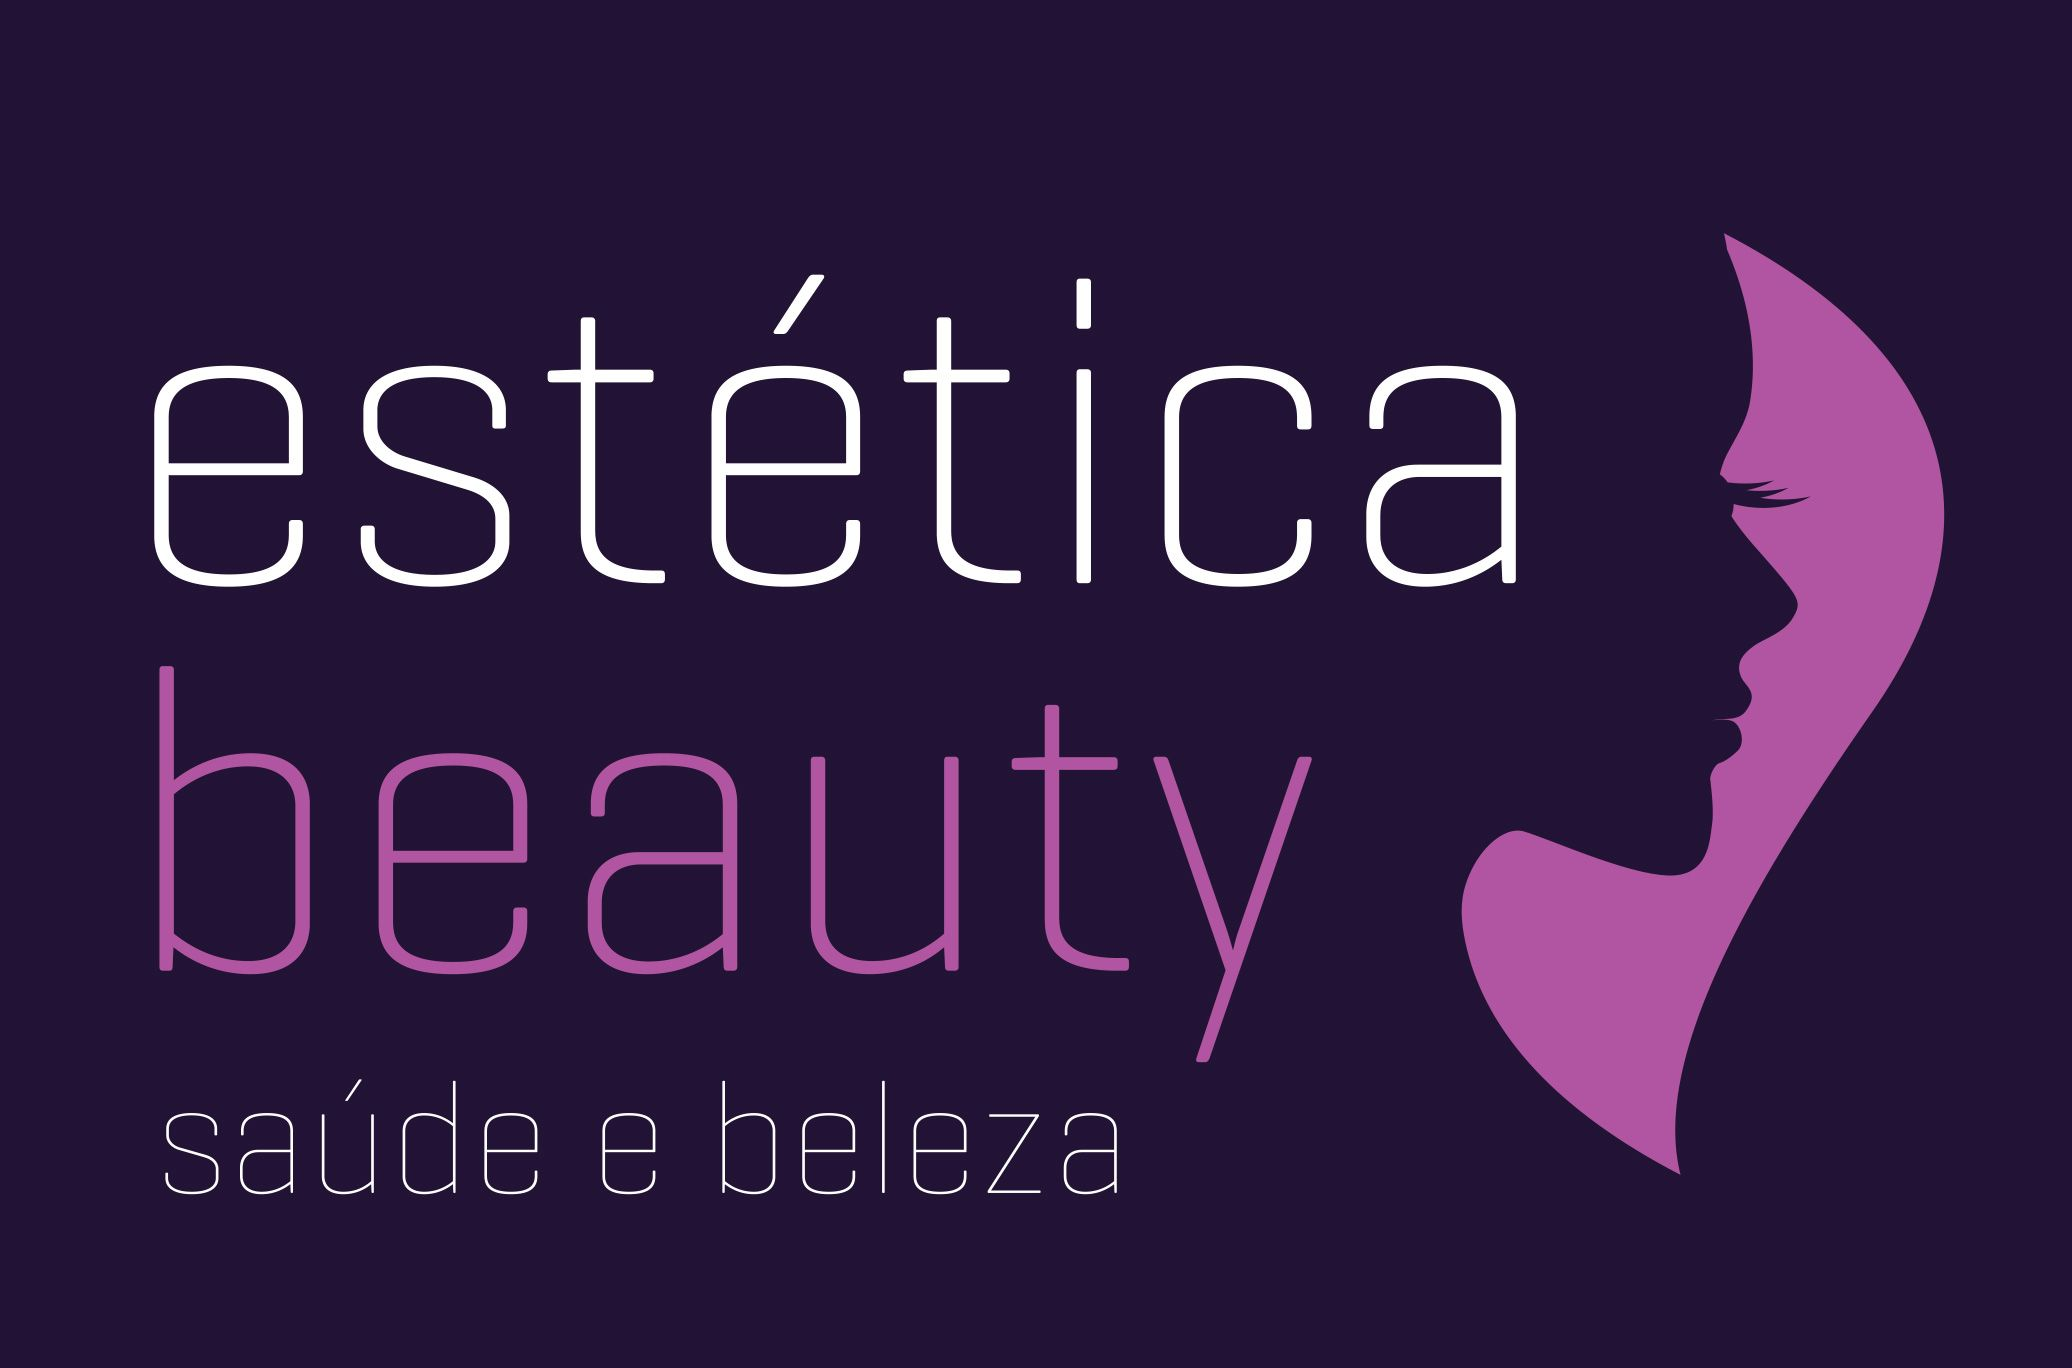 Estética beauty